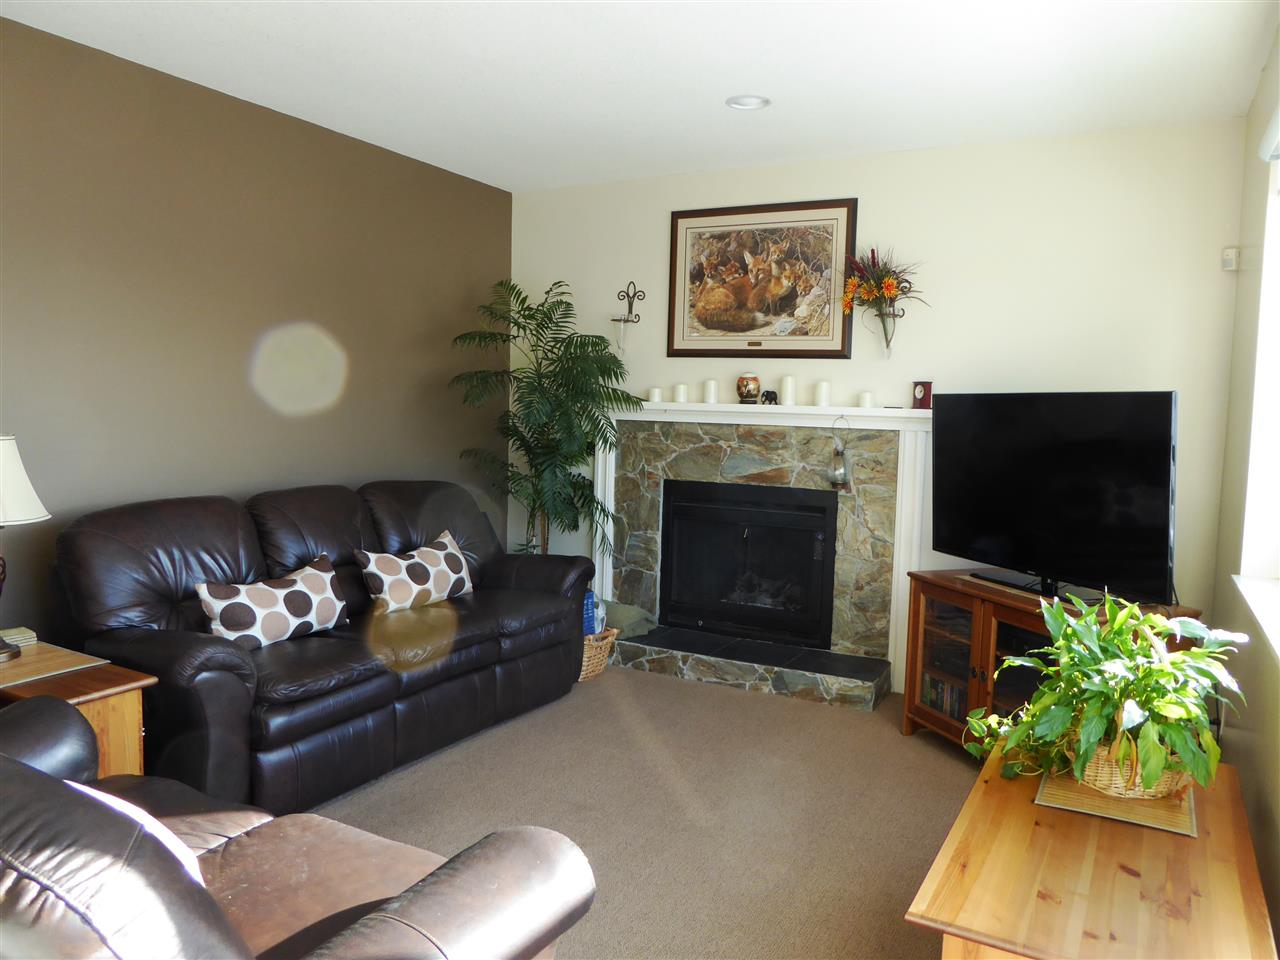 "Photo 7: 6 CEDARWOOD Court in Port Moody: Heritage Woods PM House for sale in ""HERITAGE WOODS"" : MLS® # R2137068"